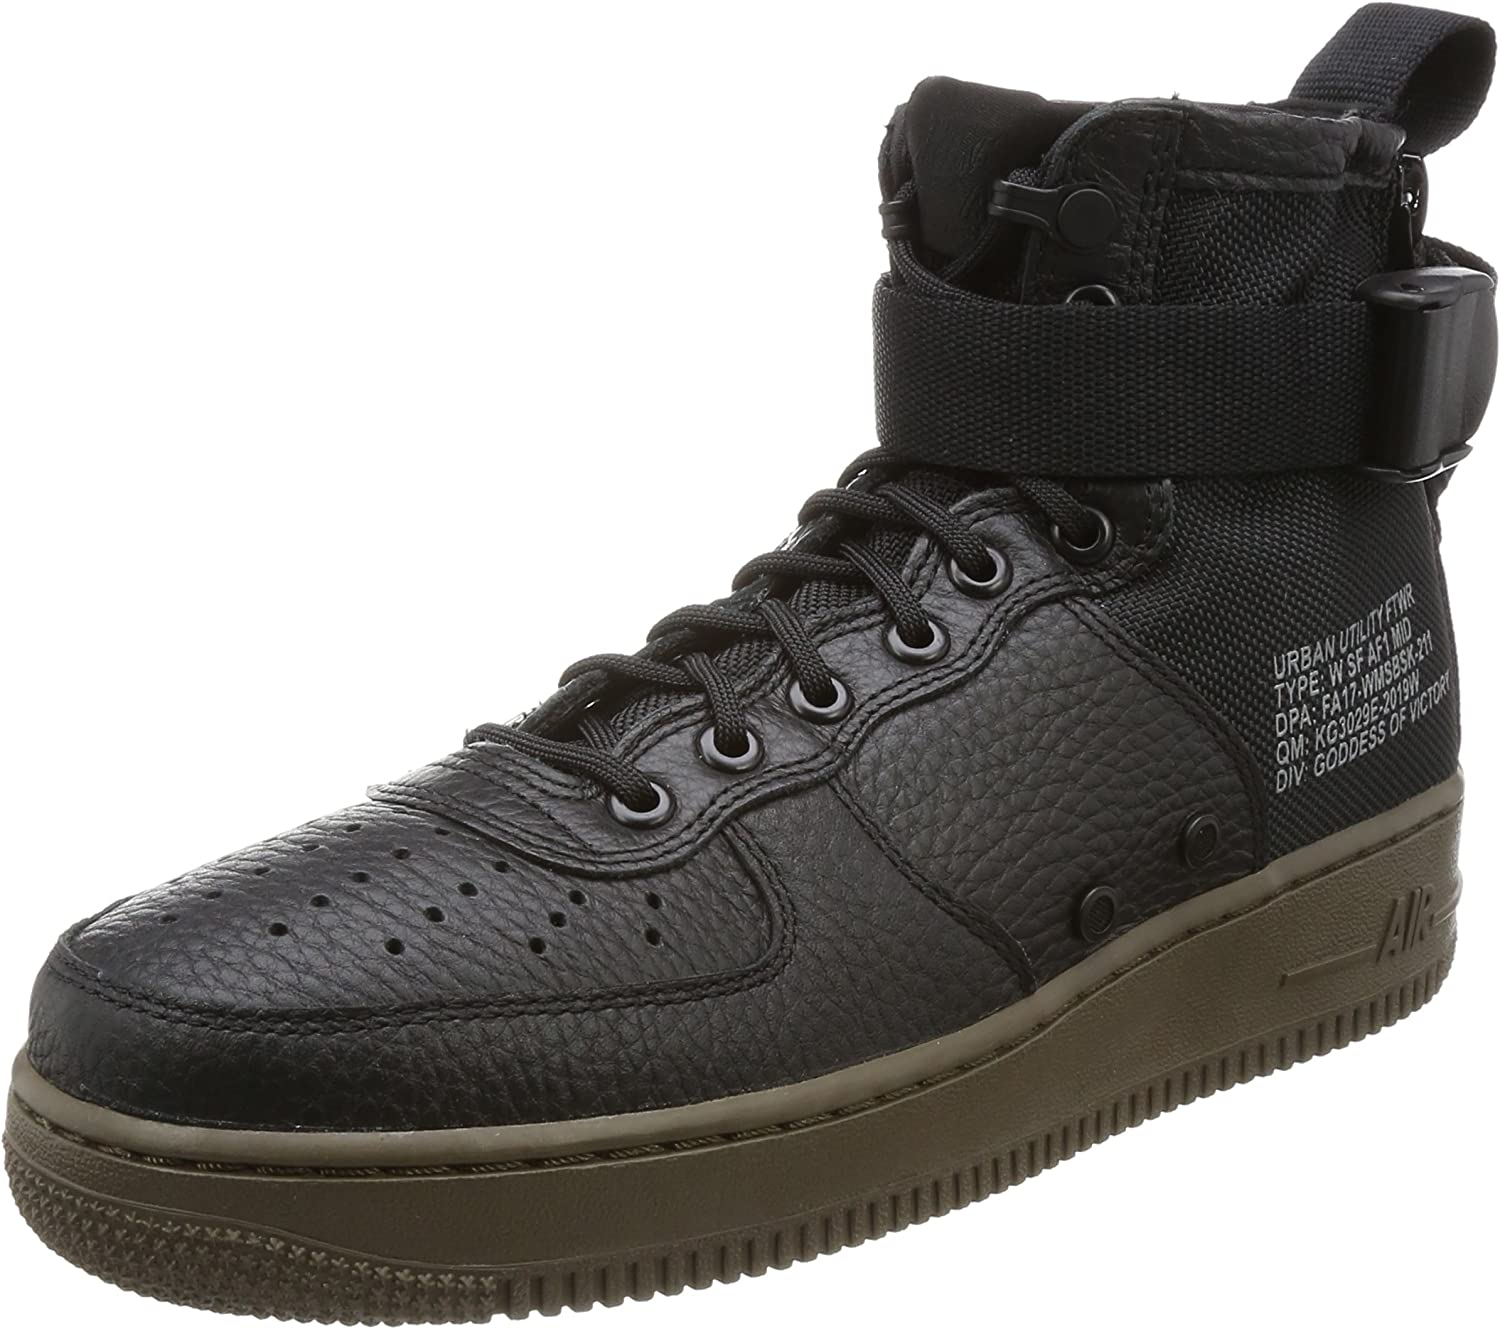 NIKE Womens WS F Air Force 1 AF1 Mid BlackBrown Size 6.5